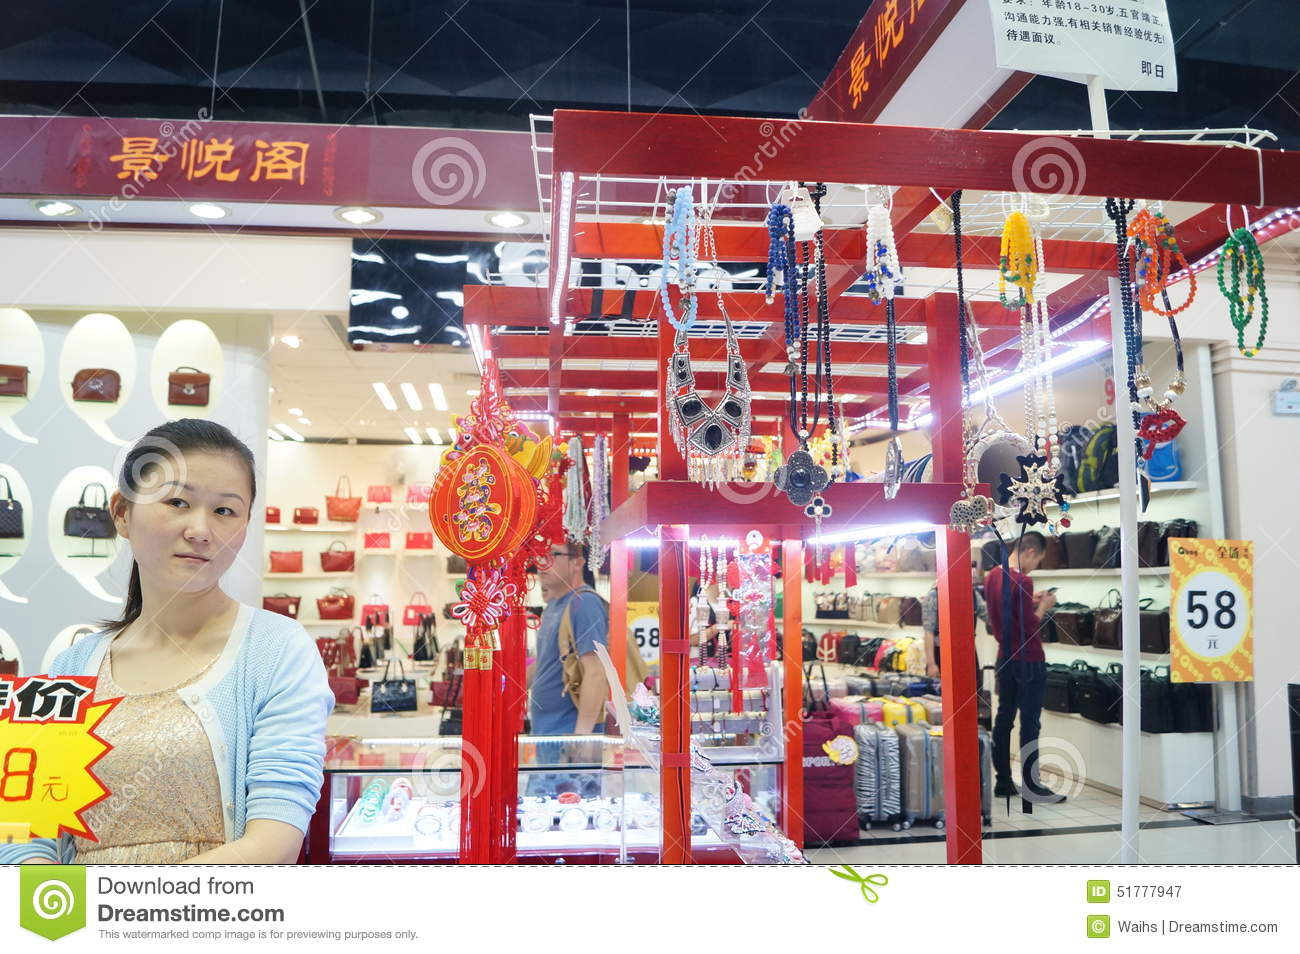 bcc131f885d Women s accessories shop editorial stock image. Image of ...